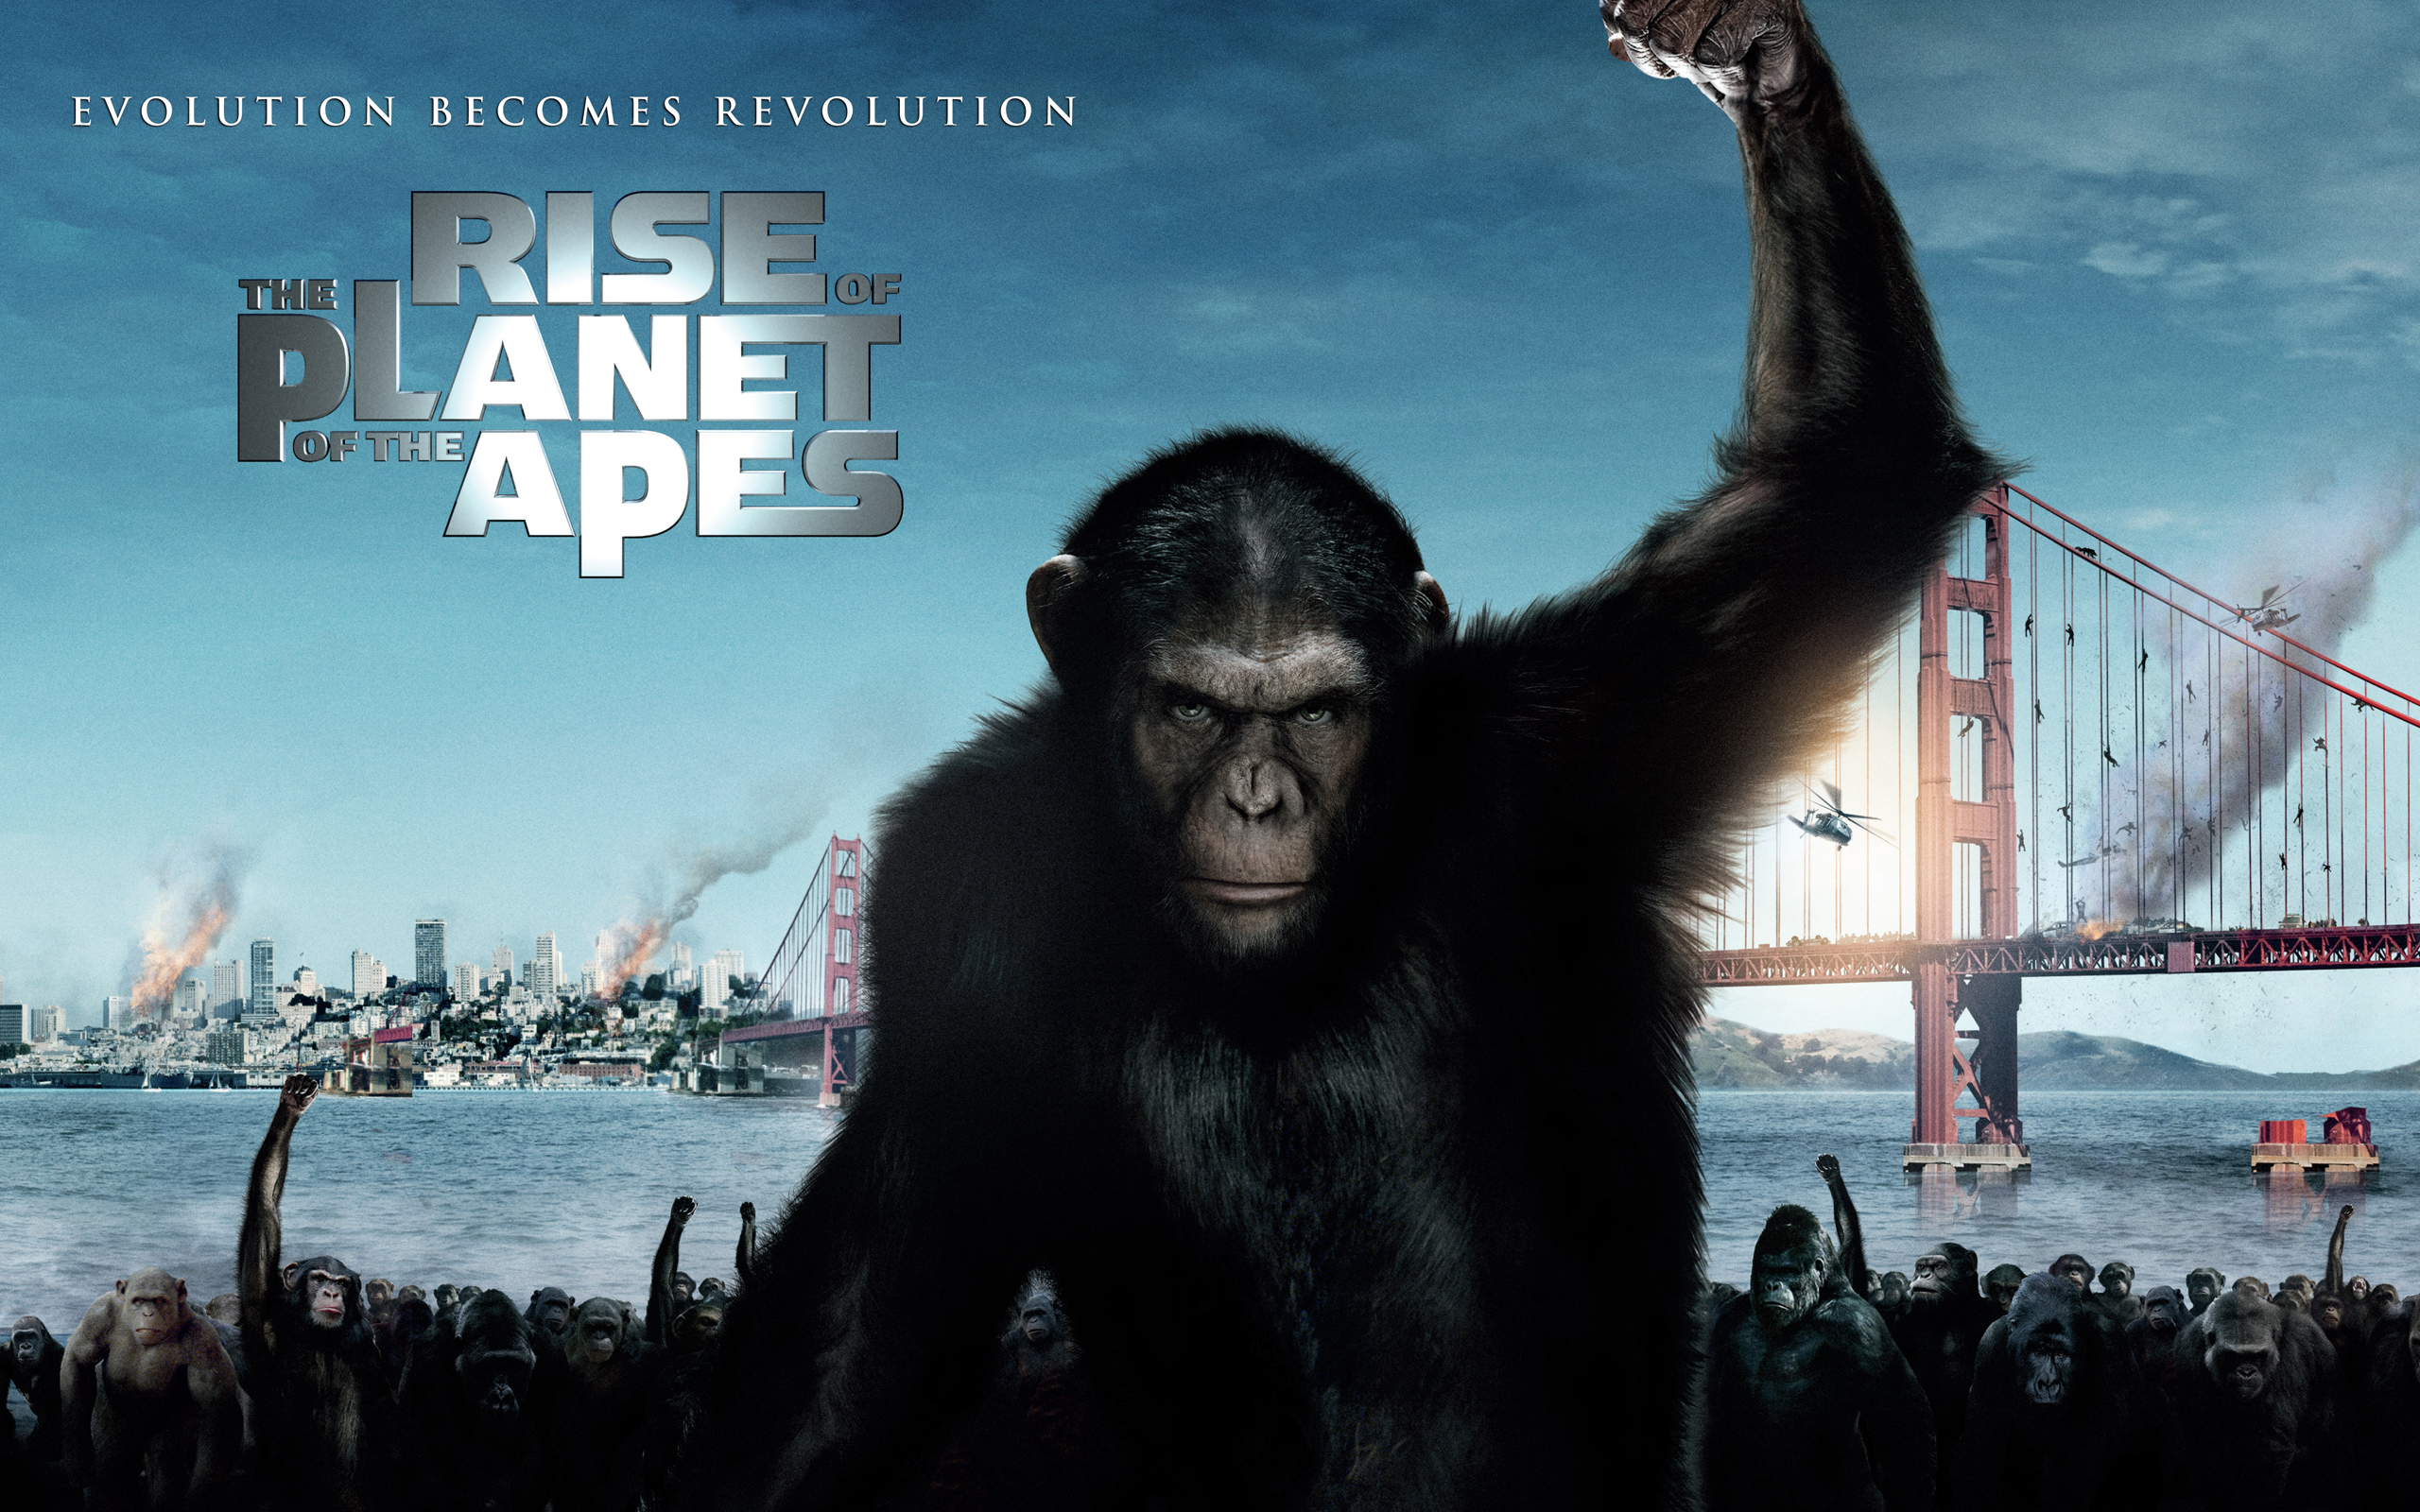 Planet Of The Apes Backgrounds on Wallpapers Vista